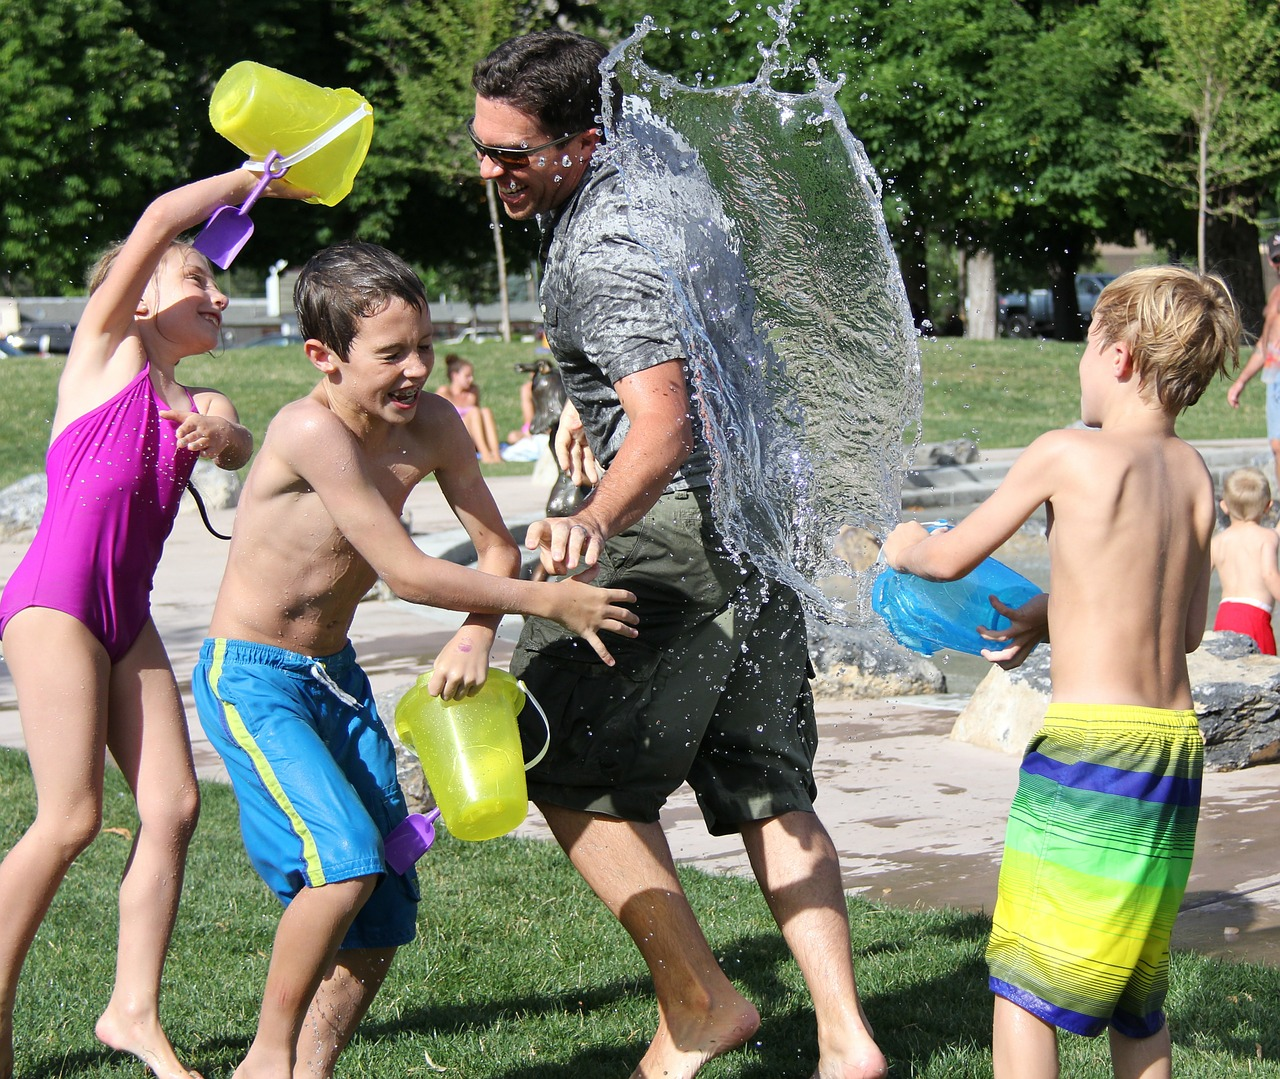 water-fight-442257 1280